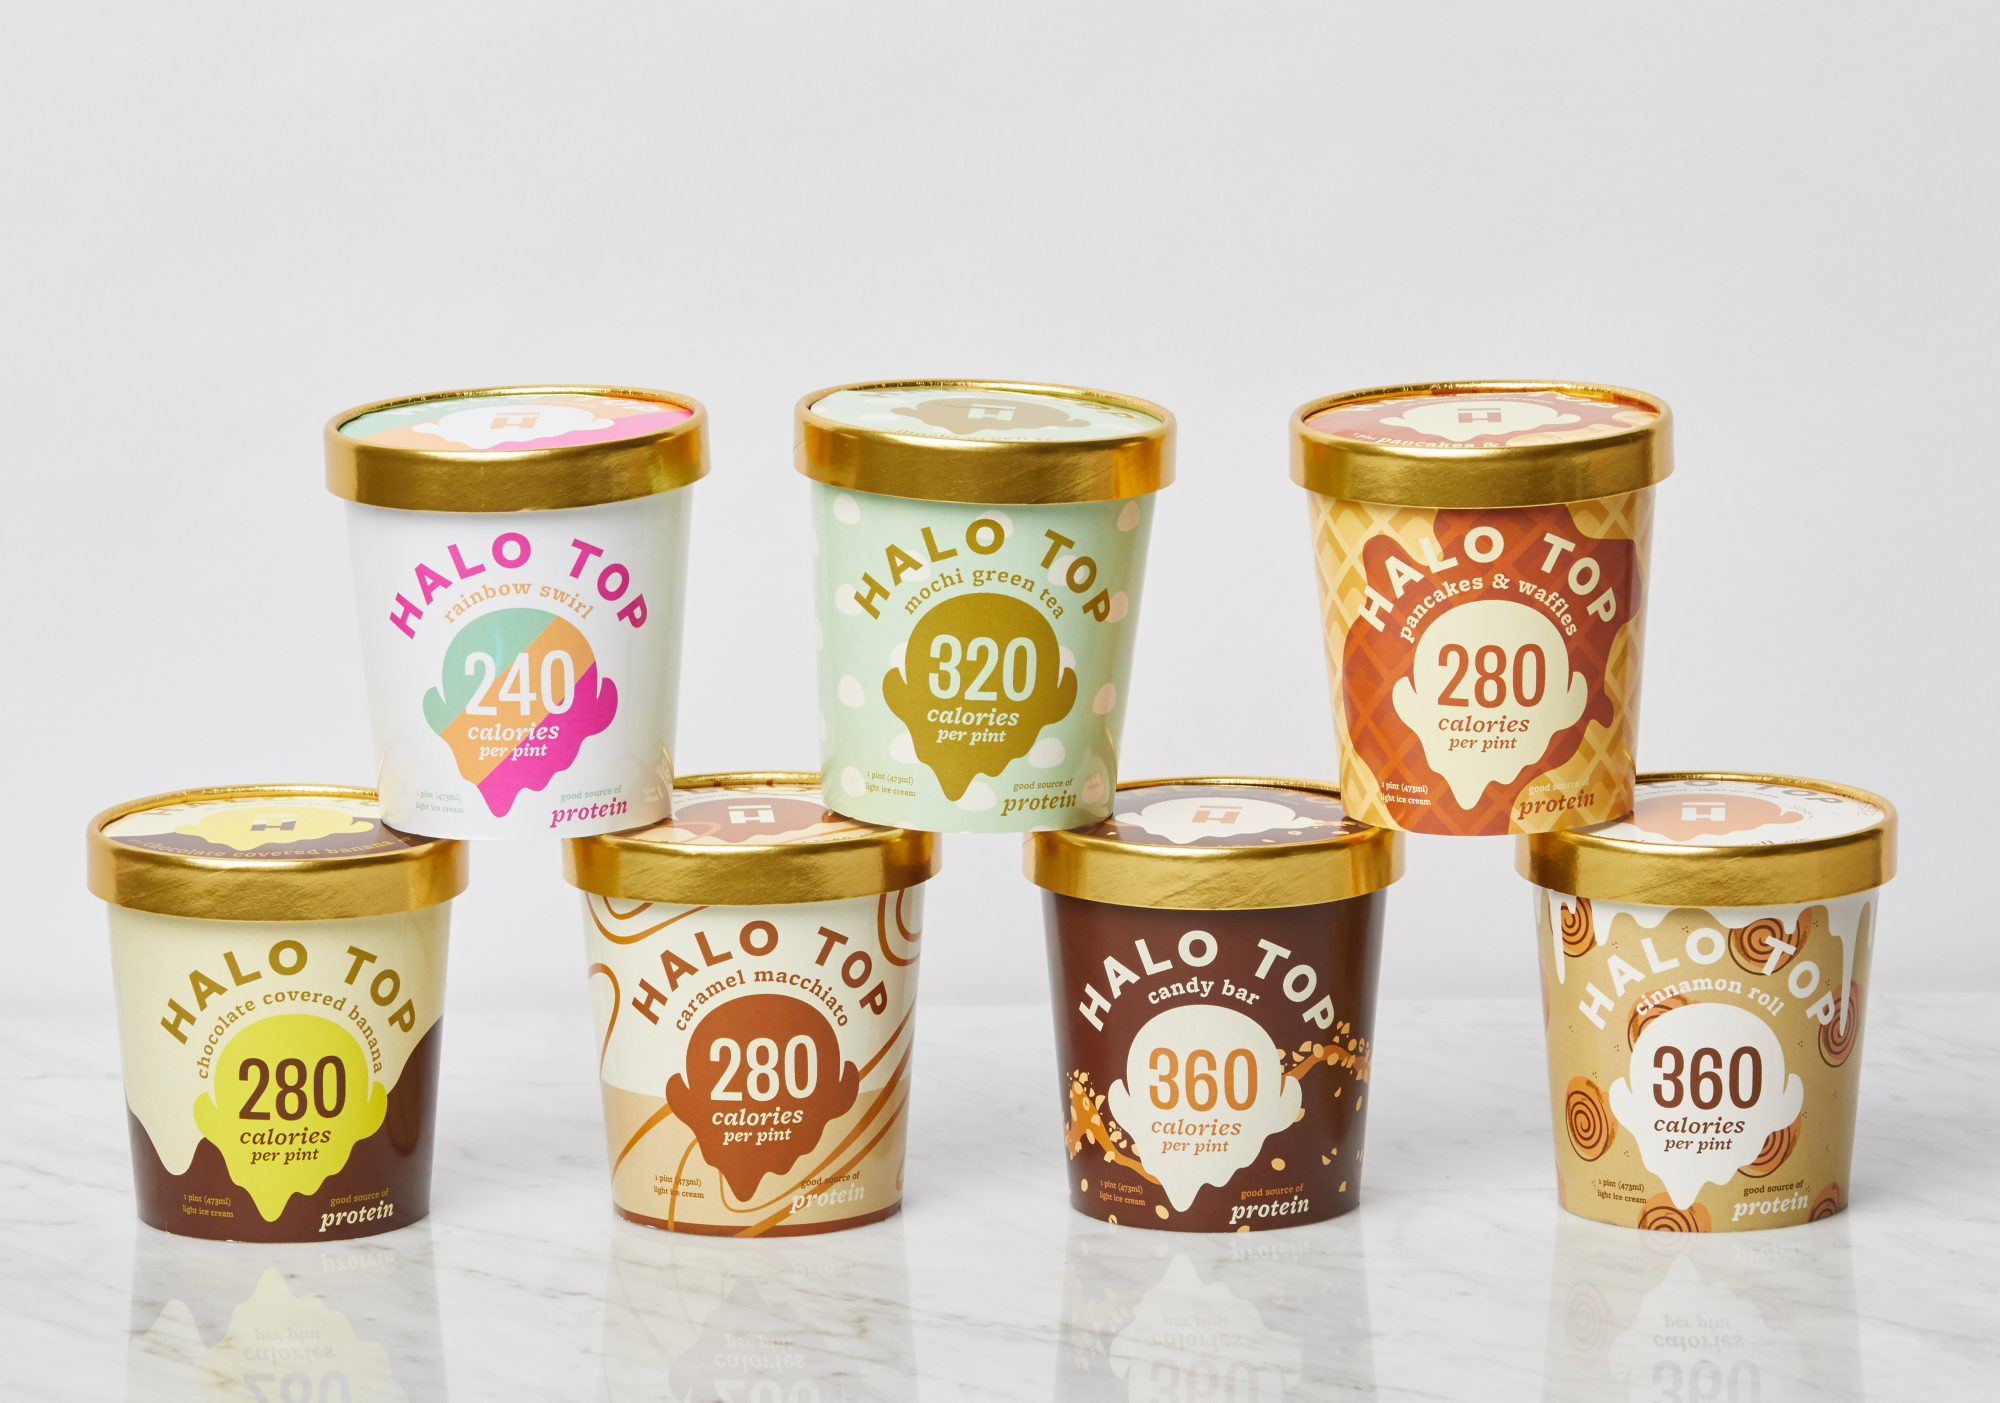 Halo Top Debuts 7 New Flavors Including Pancakes & Waffles